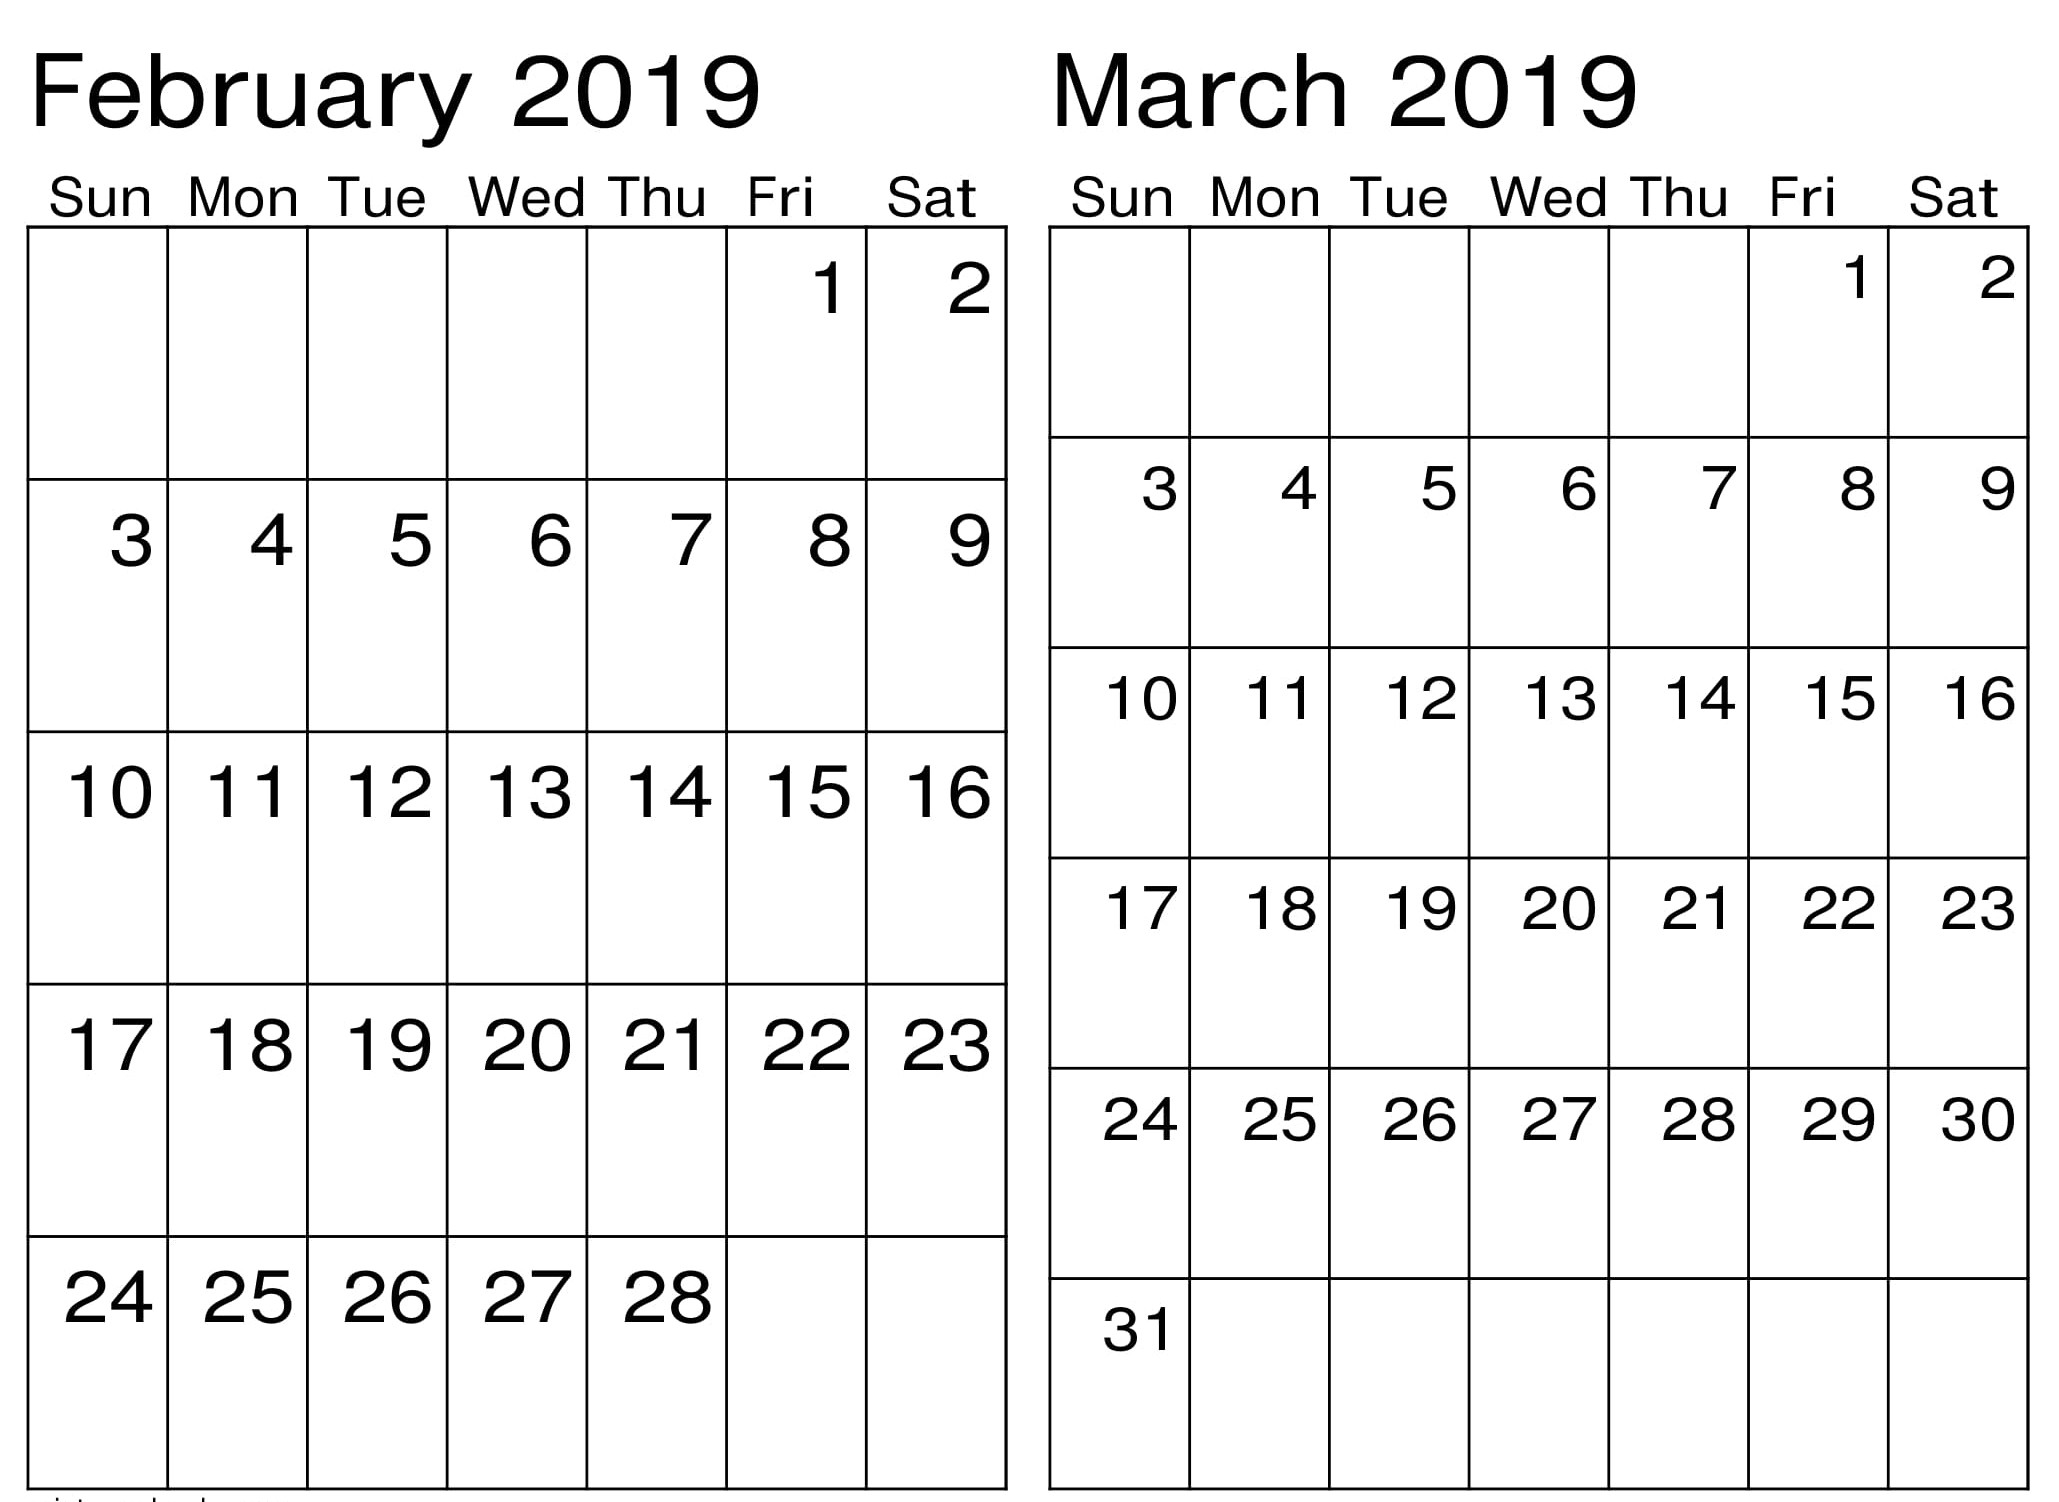 March Calendar 2019 Más Recientemente Liberado February March Calendar 2019 – Free Calendar Templates & Worksheets Of March Calendar 2019 Más Populares February March Calendar 2019 2018 Printable Calendar Store